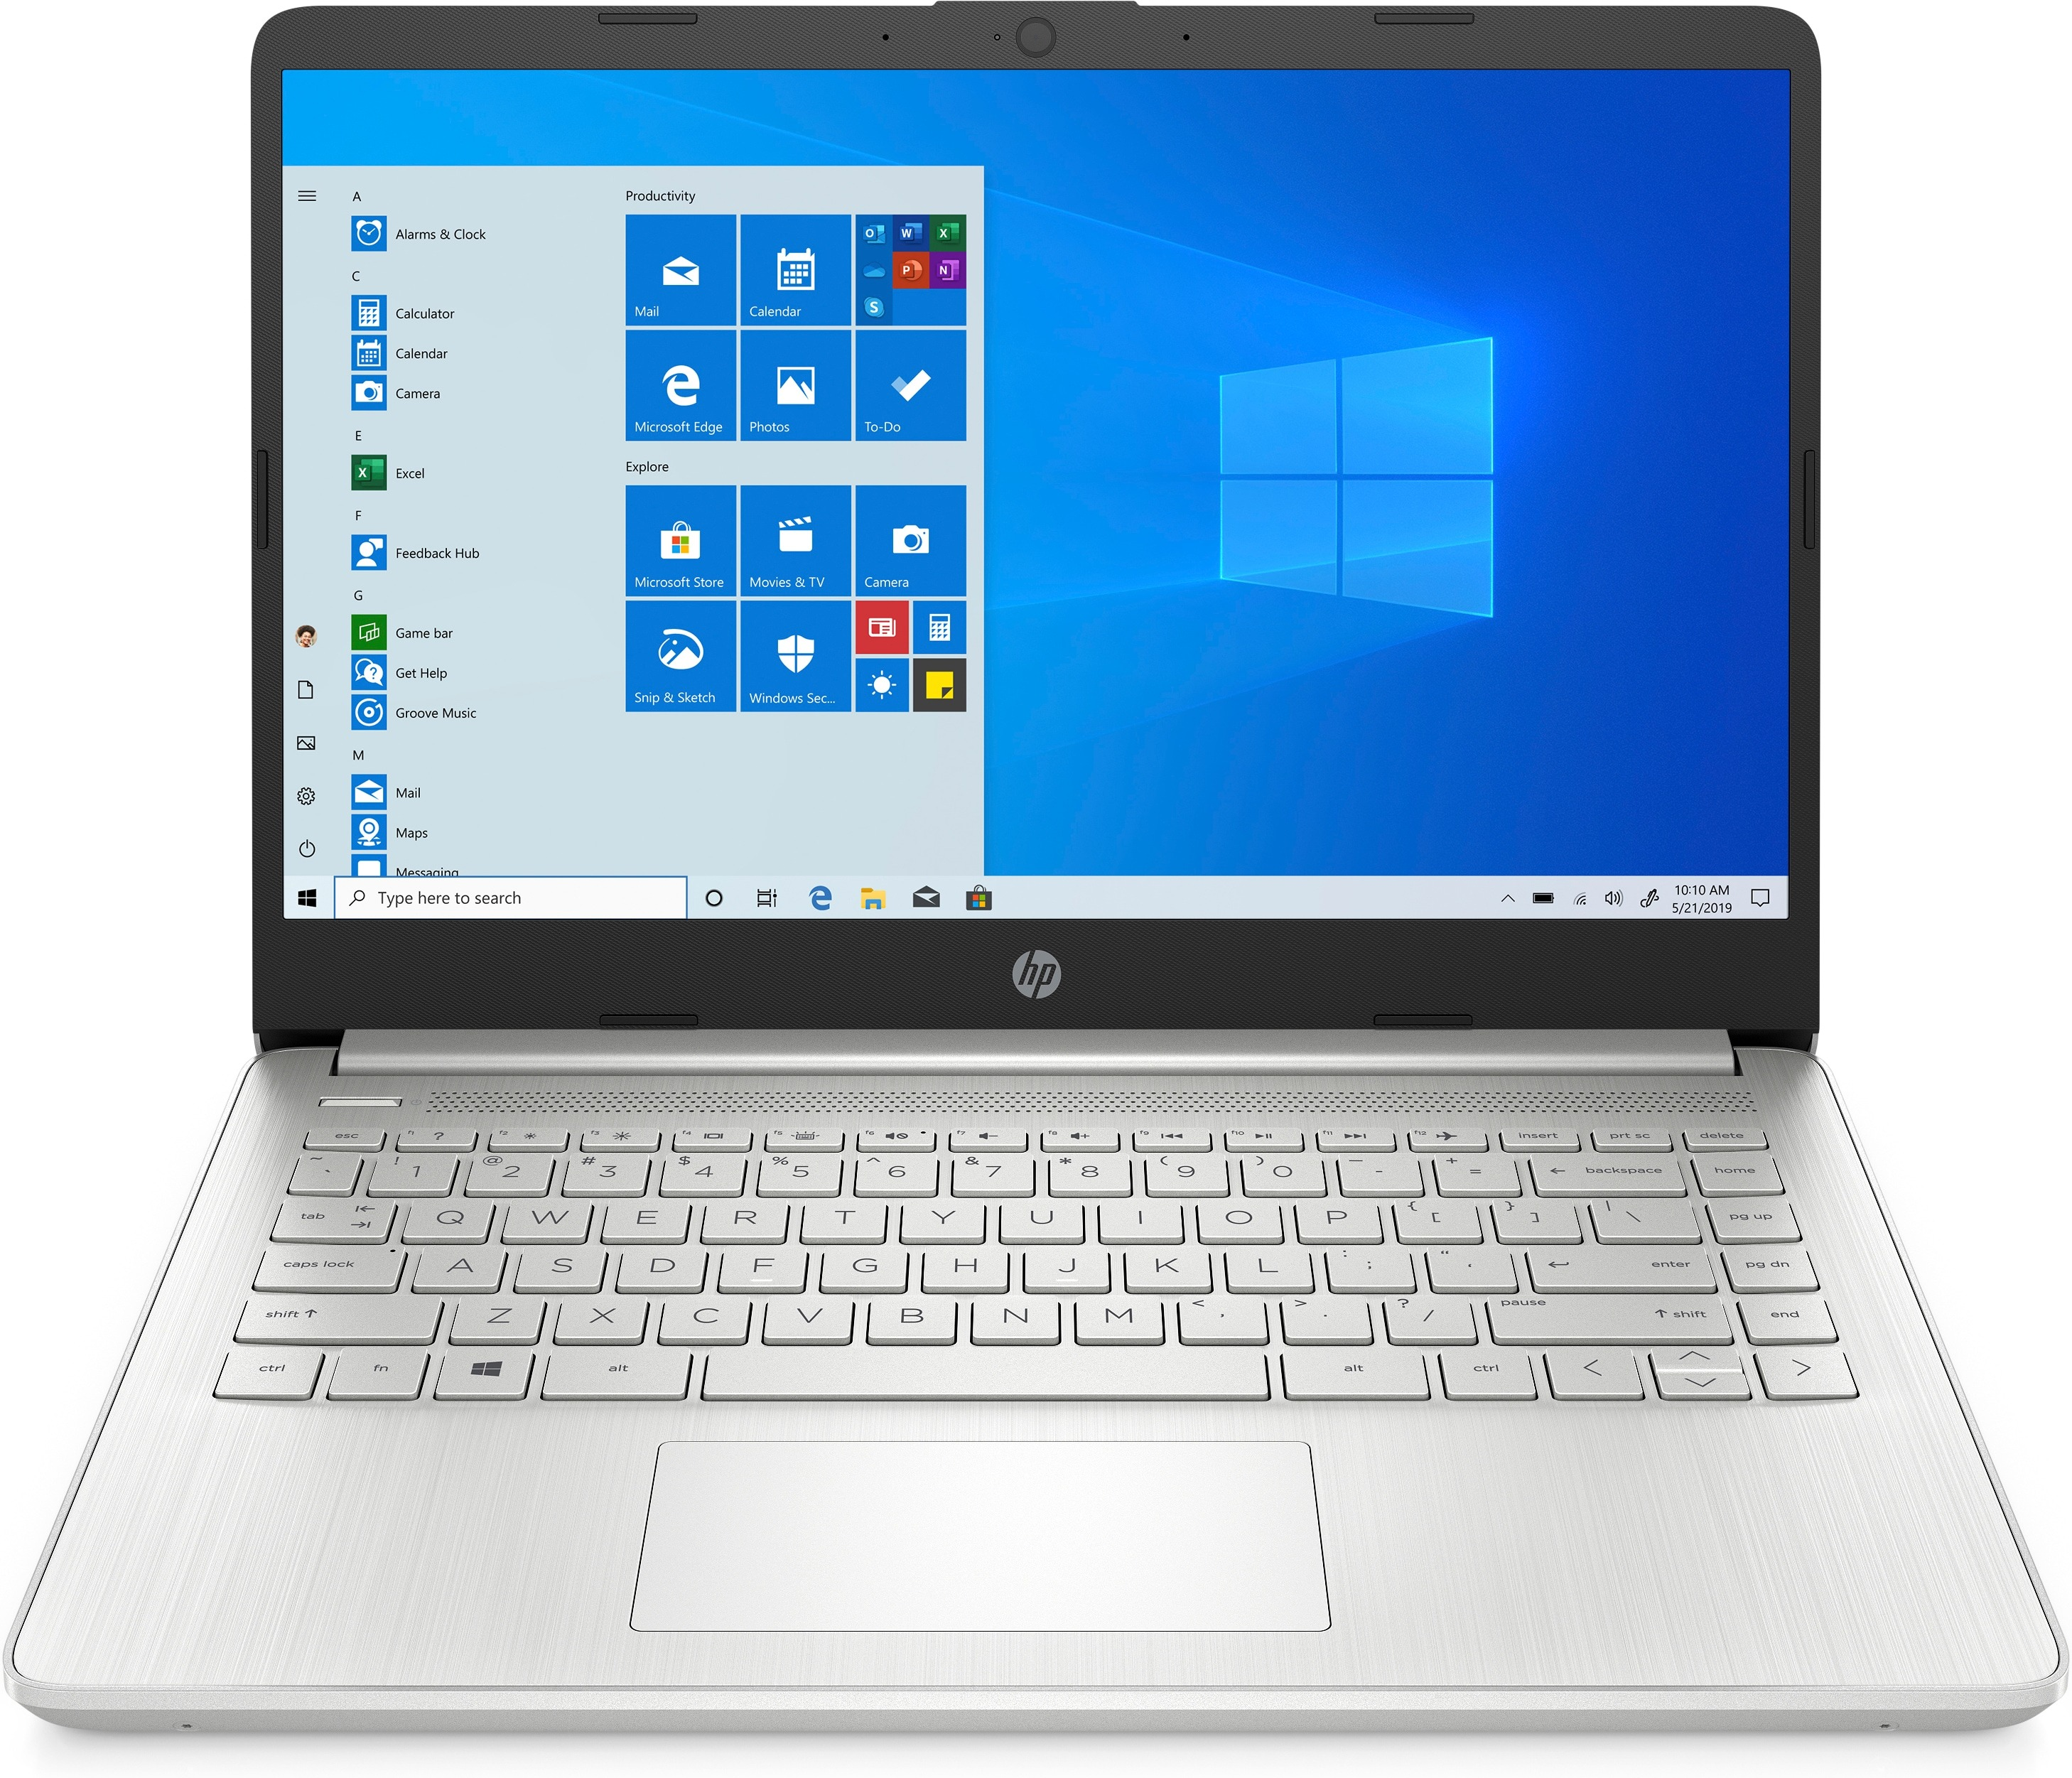 HP 14s-dq2130nd -14 inch Laptop